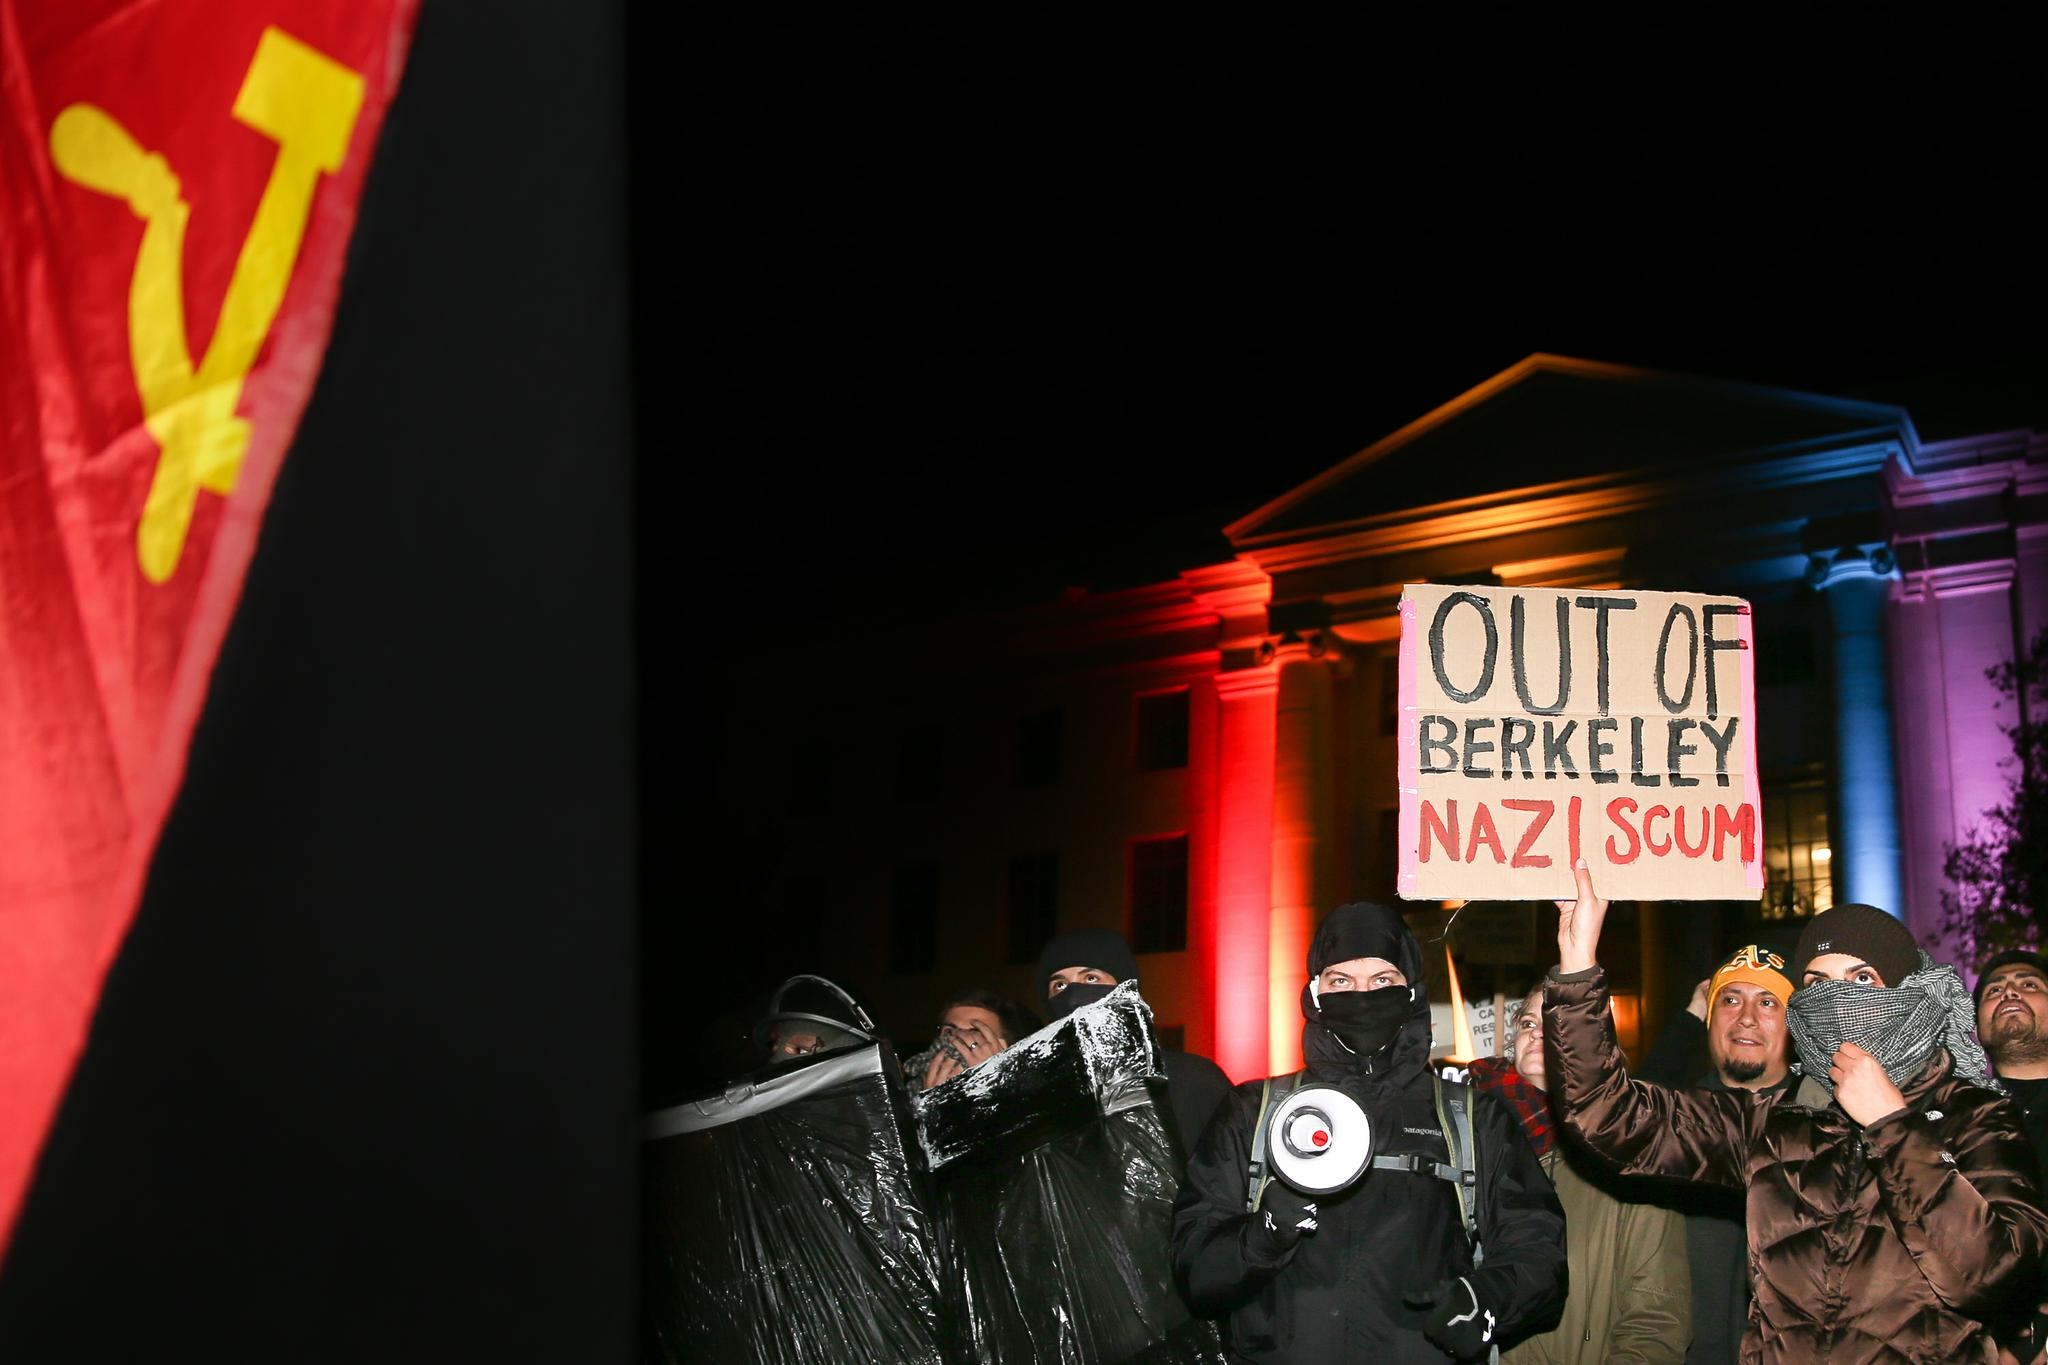 People protest controversial Breitbart writer Milo Yiannopoulos at UC Berkeley on February 1. A scheduled speech by Yiannopoulos was canceled after the protests became violent.